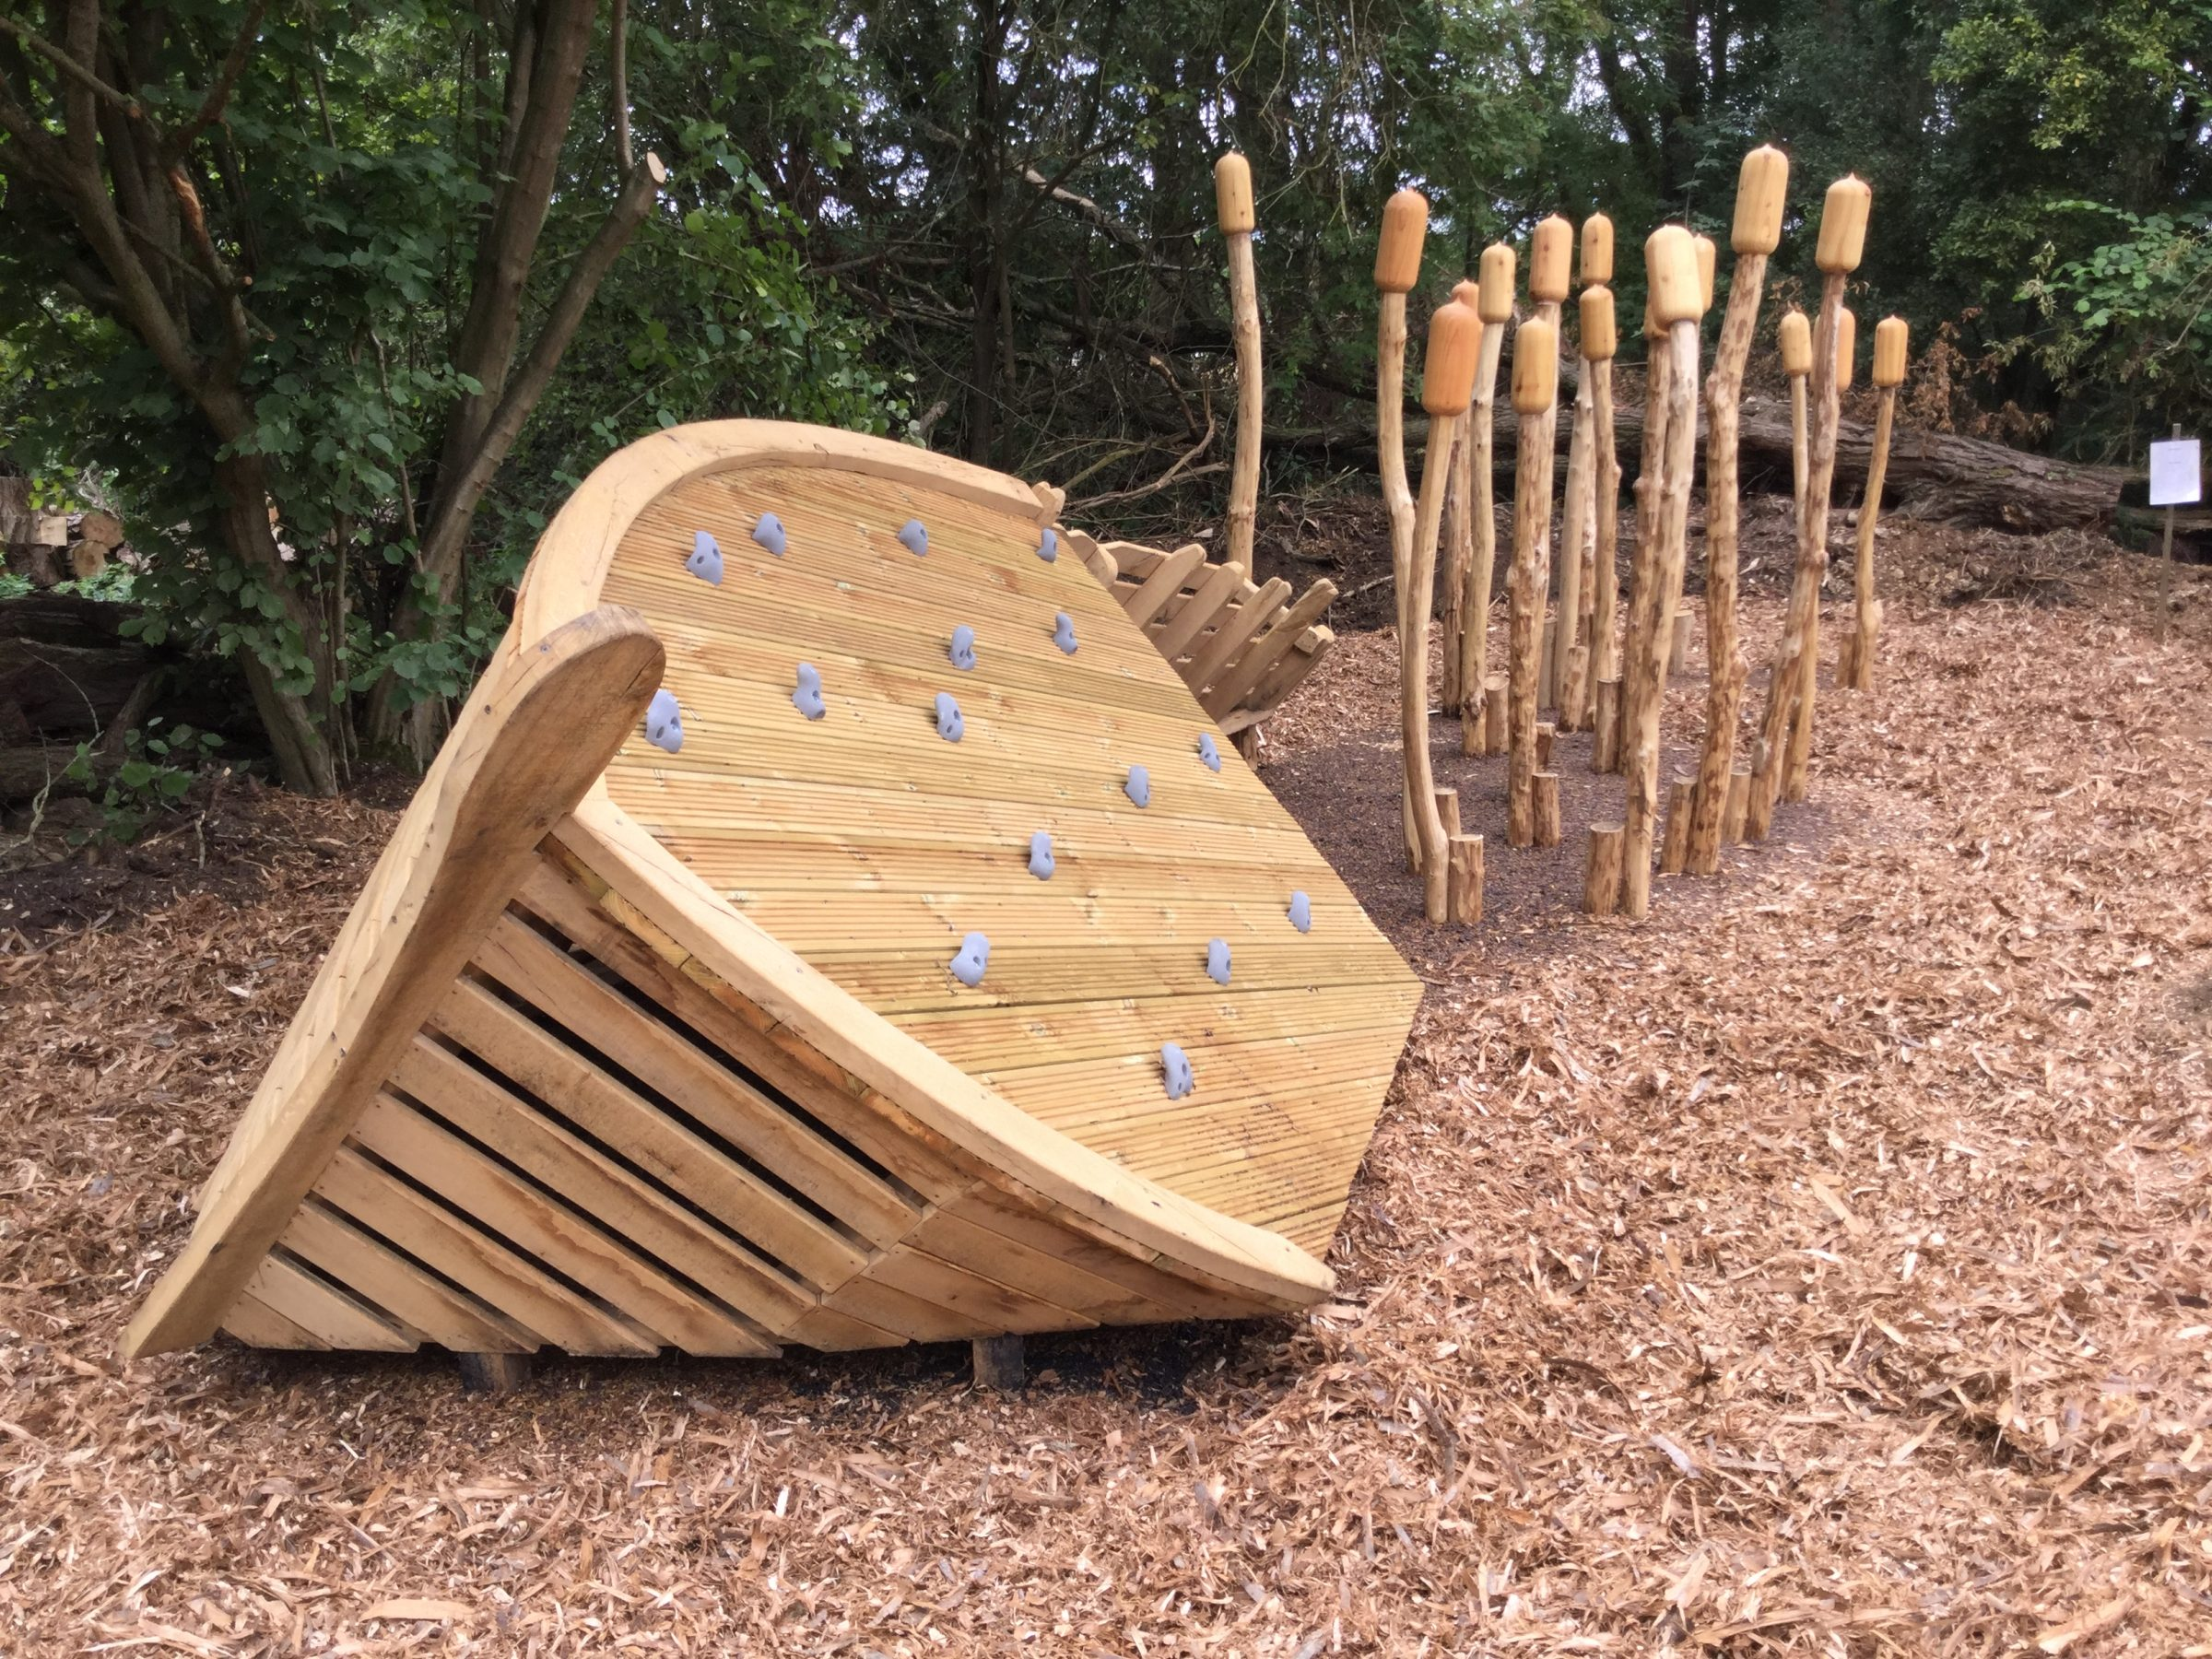 sinking ship rushden lakes play area